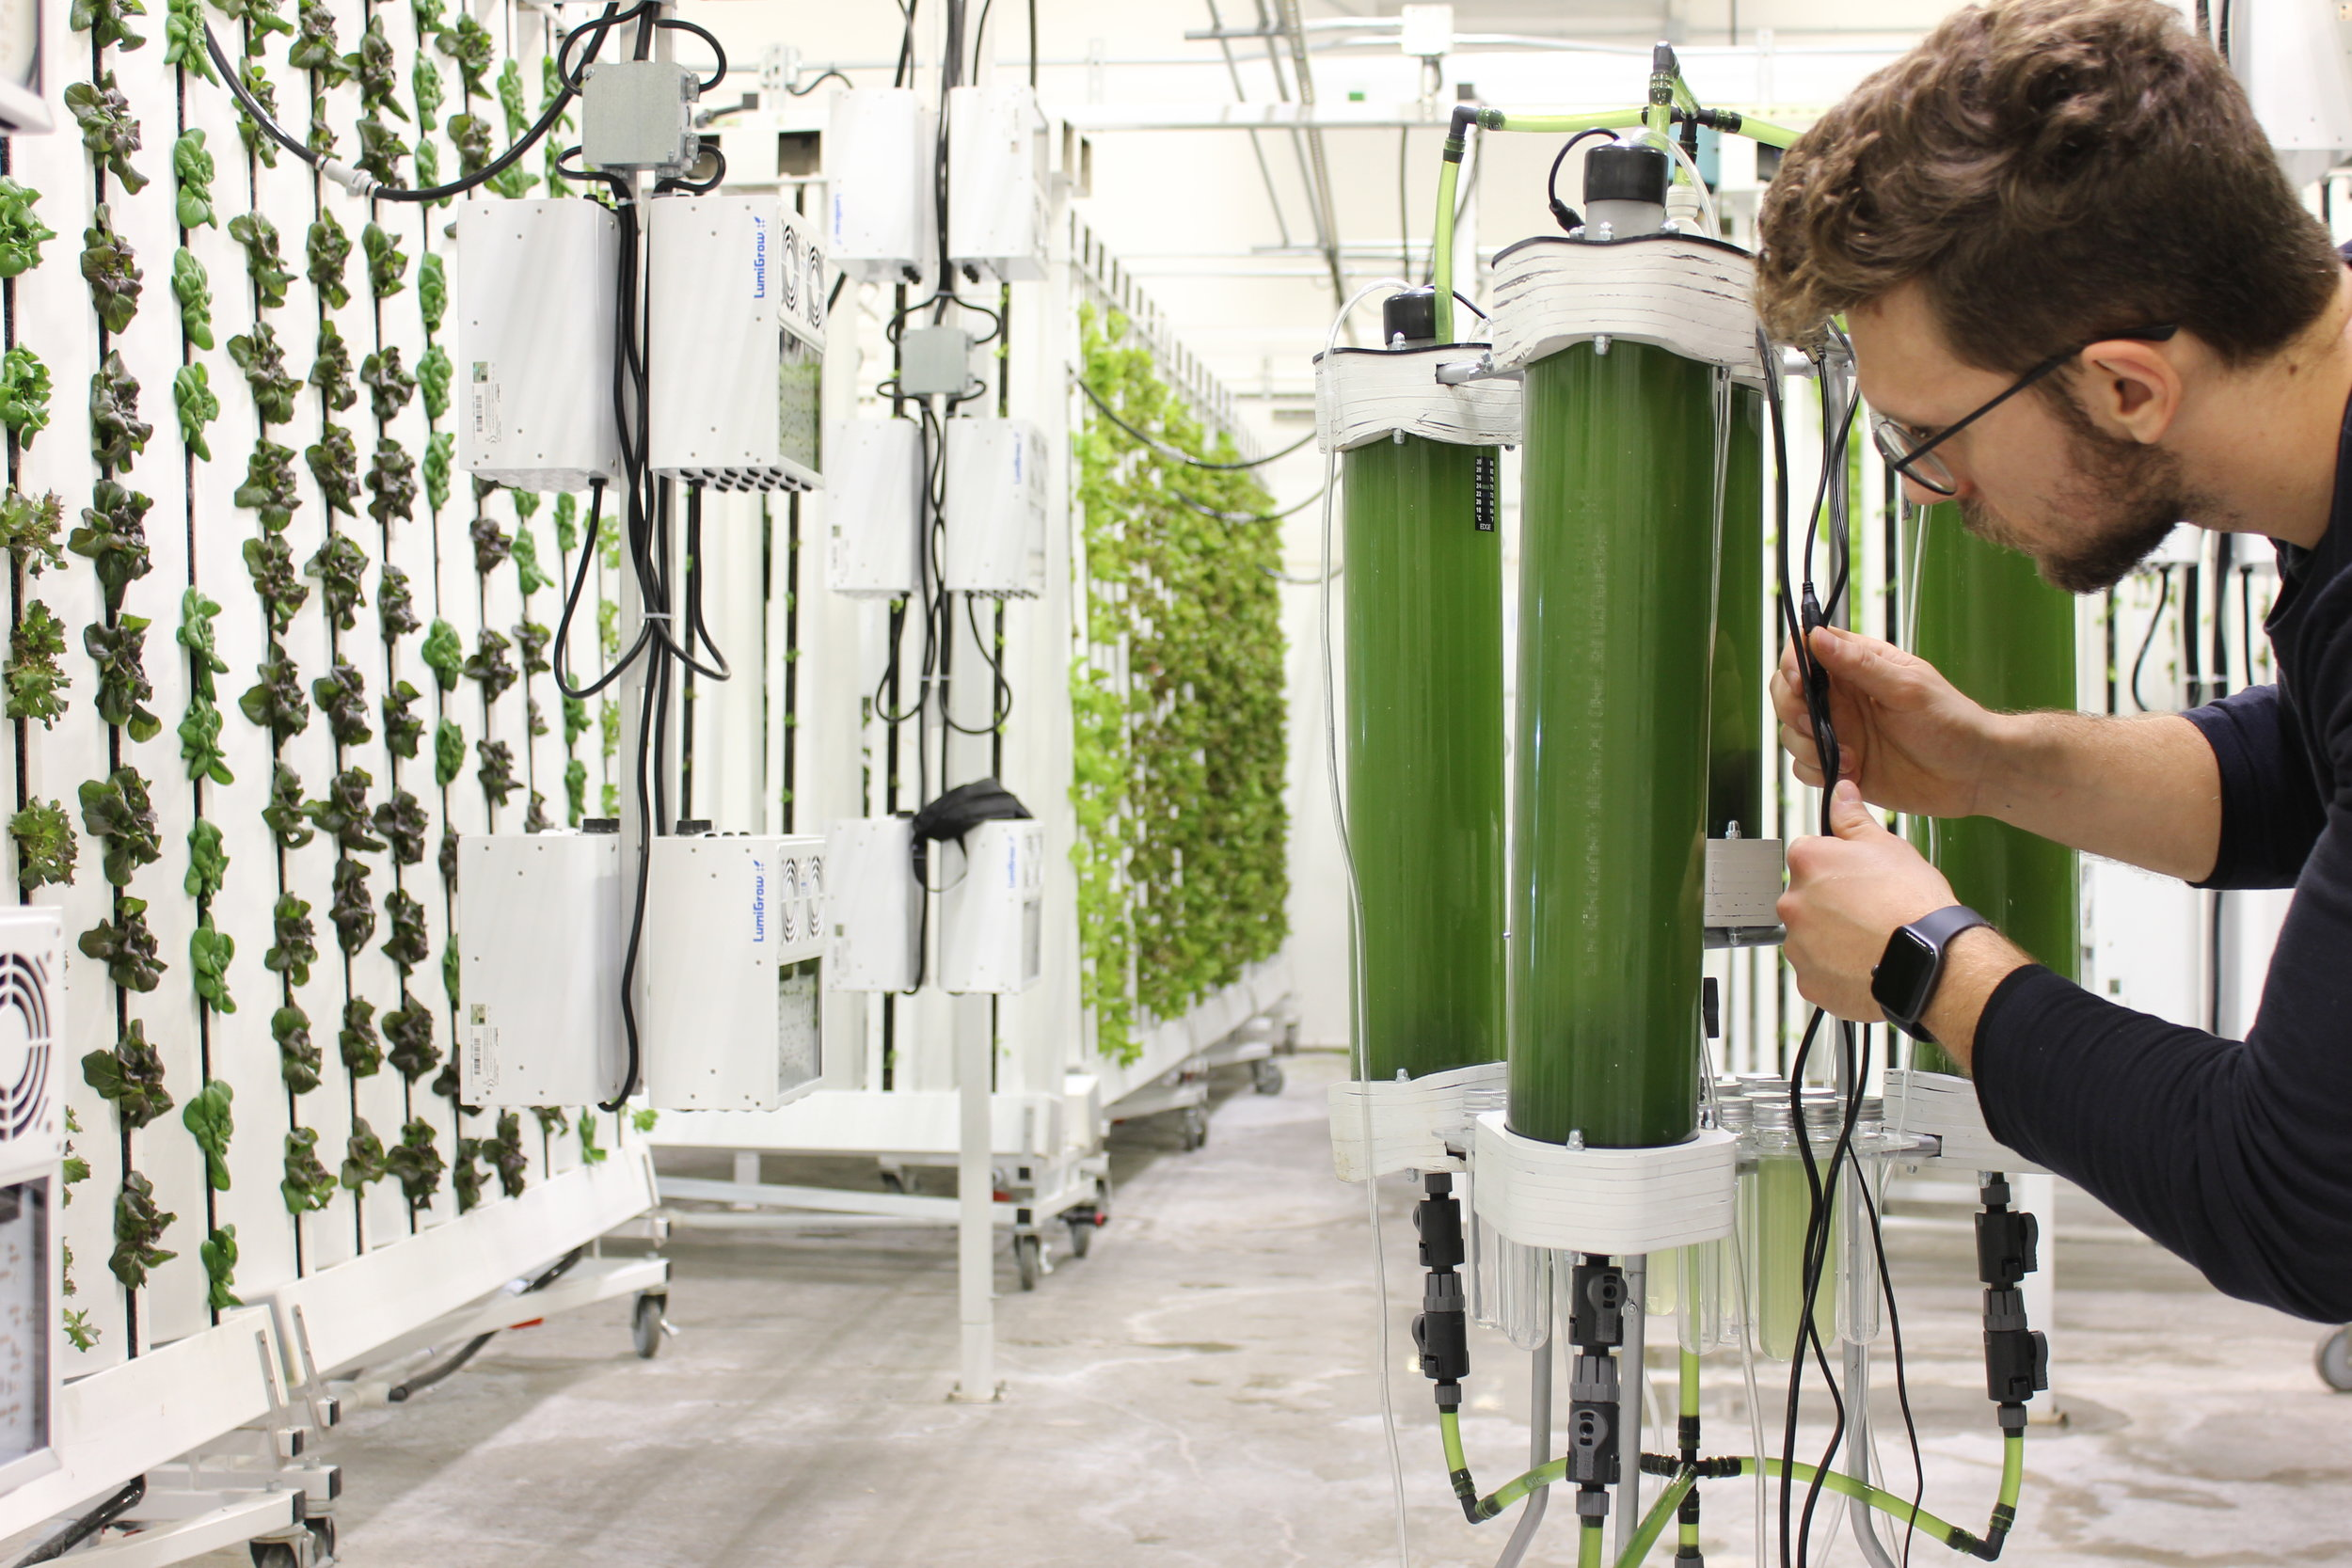 Tiago Vasconcelos - Tiago-Vasconcelos-02-Photobioreactor growth check (1).JPG